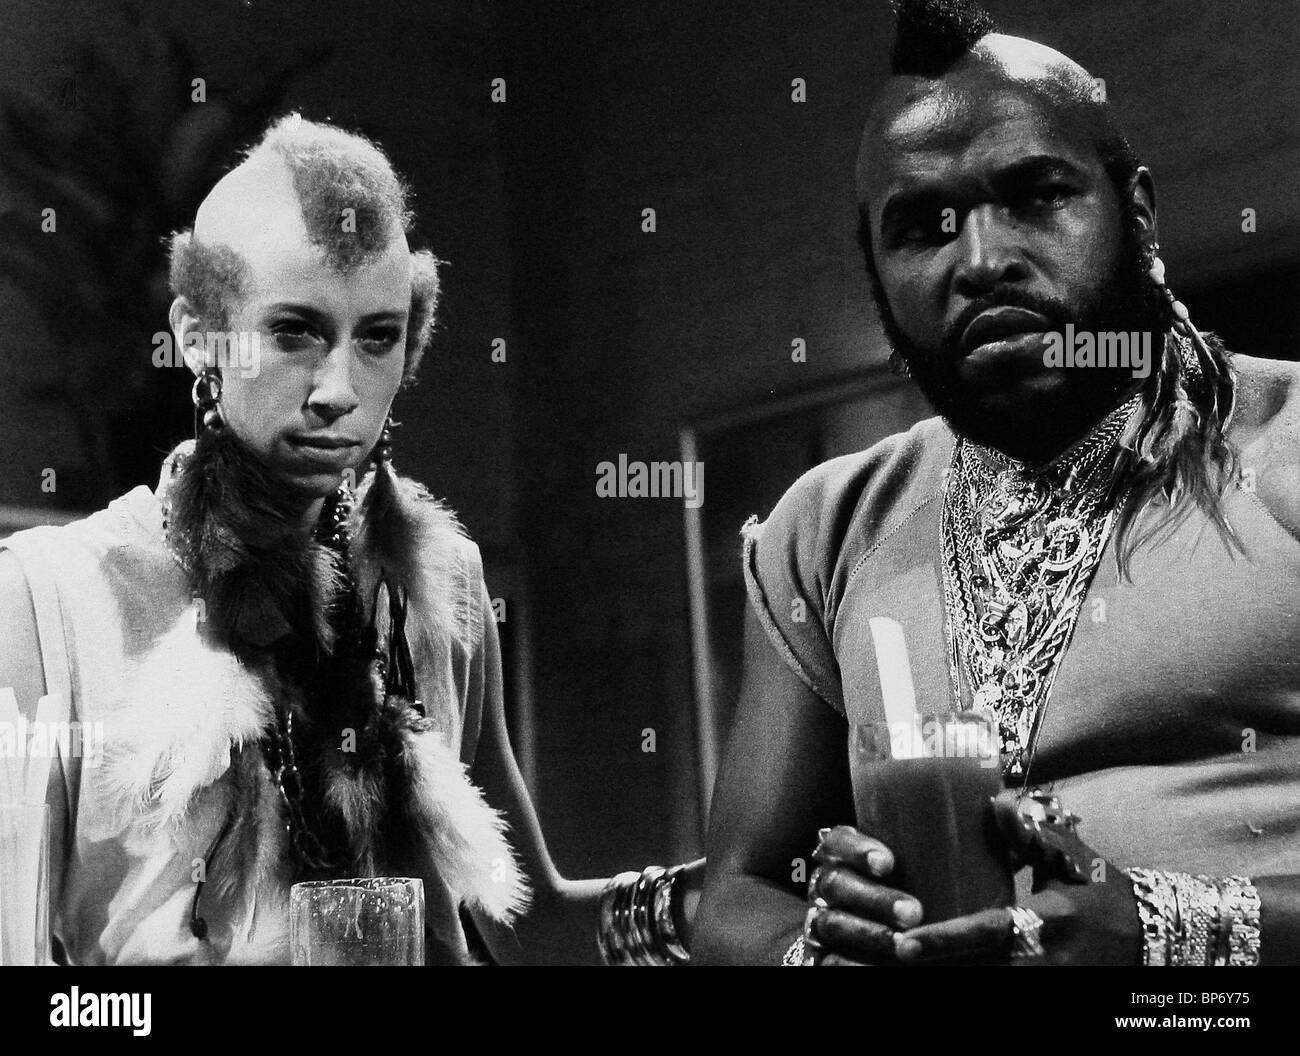 Robin duke mr t saturday night live 1983 stock image